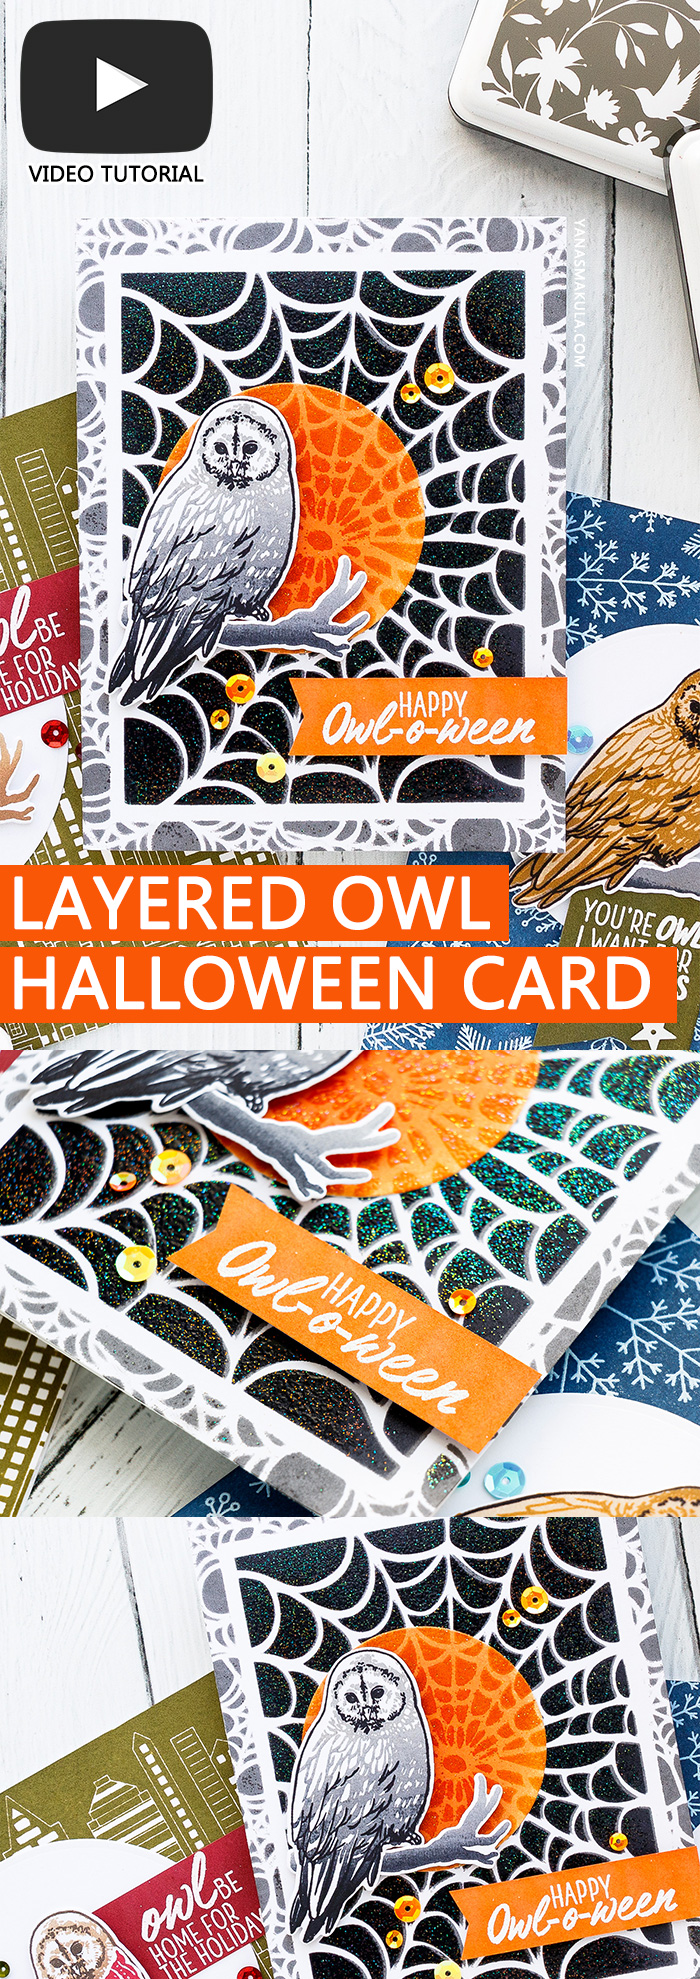 Hero Arts | Color Layering With Yana Series – Color Layering Owl Halloween & Christmas Cards. Video tutorial #yscardmaking #colorlayering #stamping #heroarts #halloweencard #owlcard